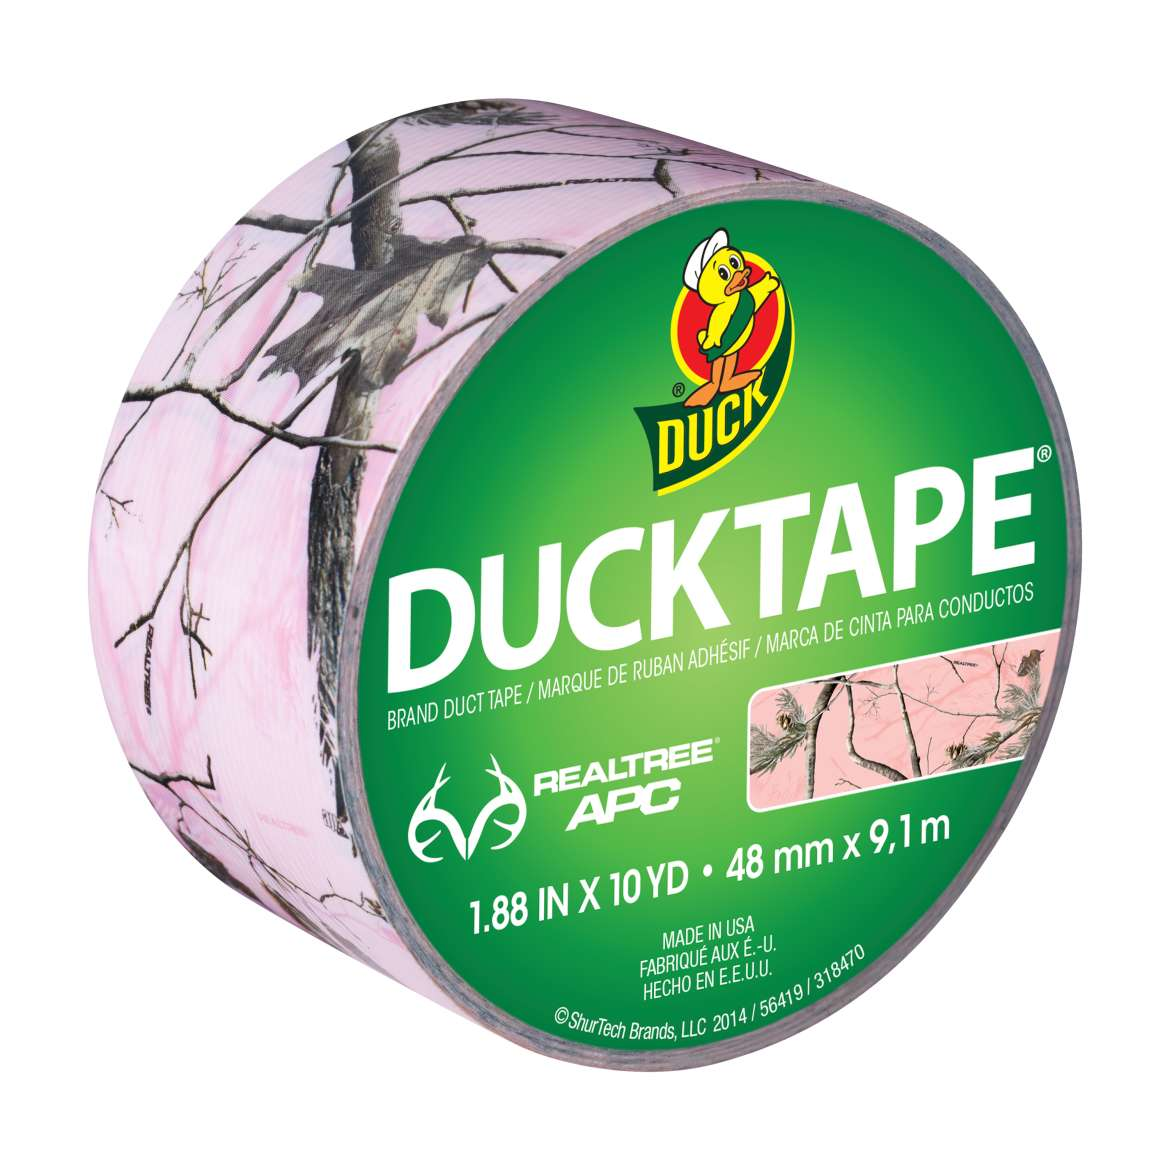 Realtree Camo Duck Tape Brand Duct Tape - Pink, 1.88 in. x 10 yd.